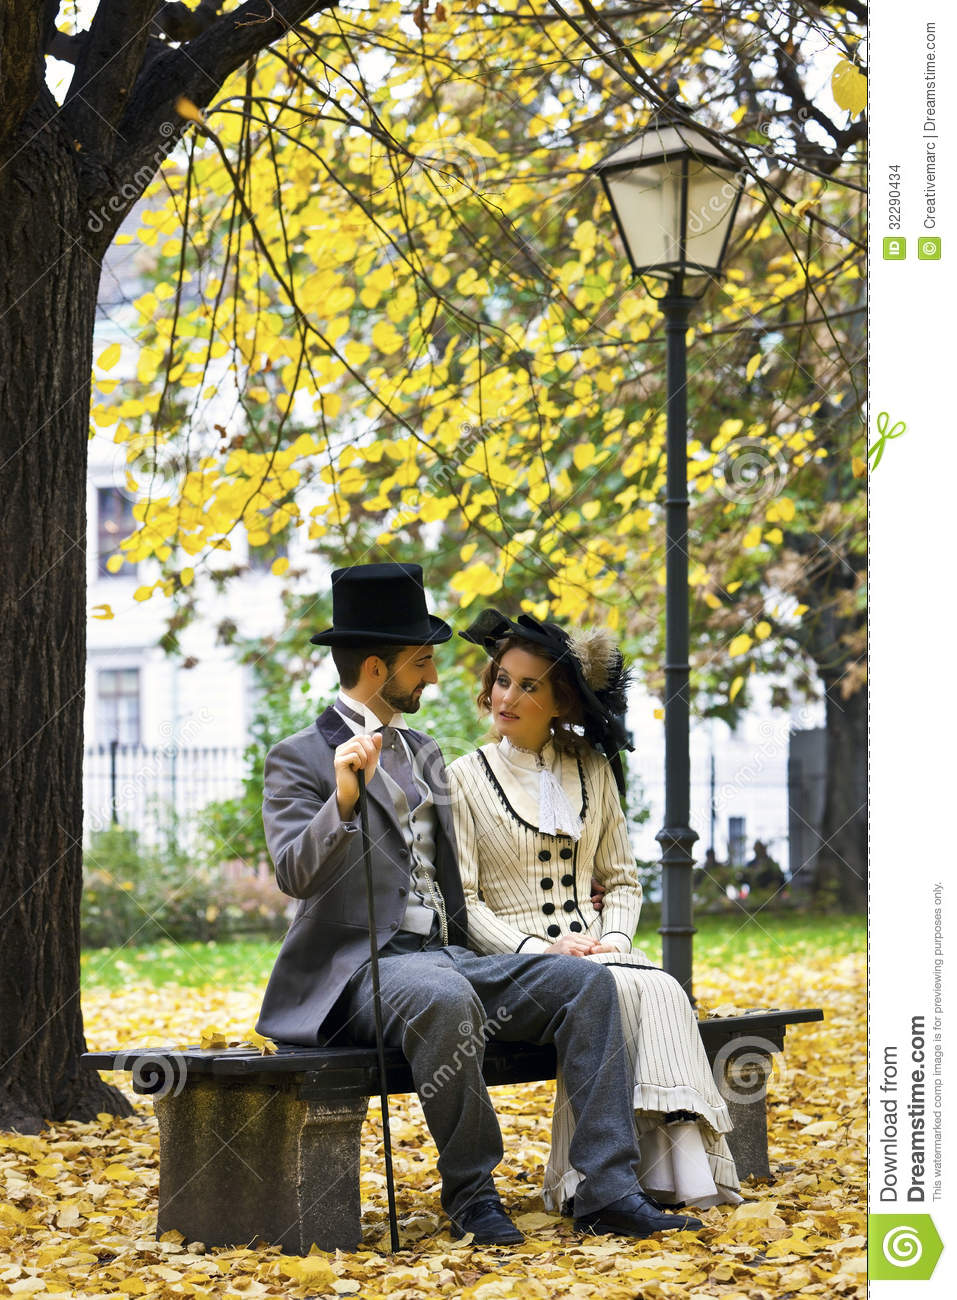 Old Fashioned Dressed Couple On A Park Bench In Fall Stock Photo